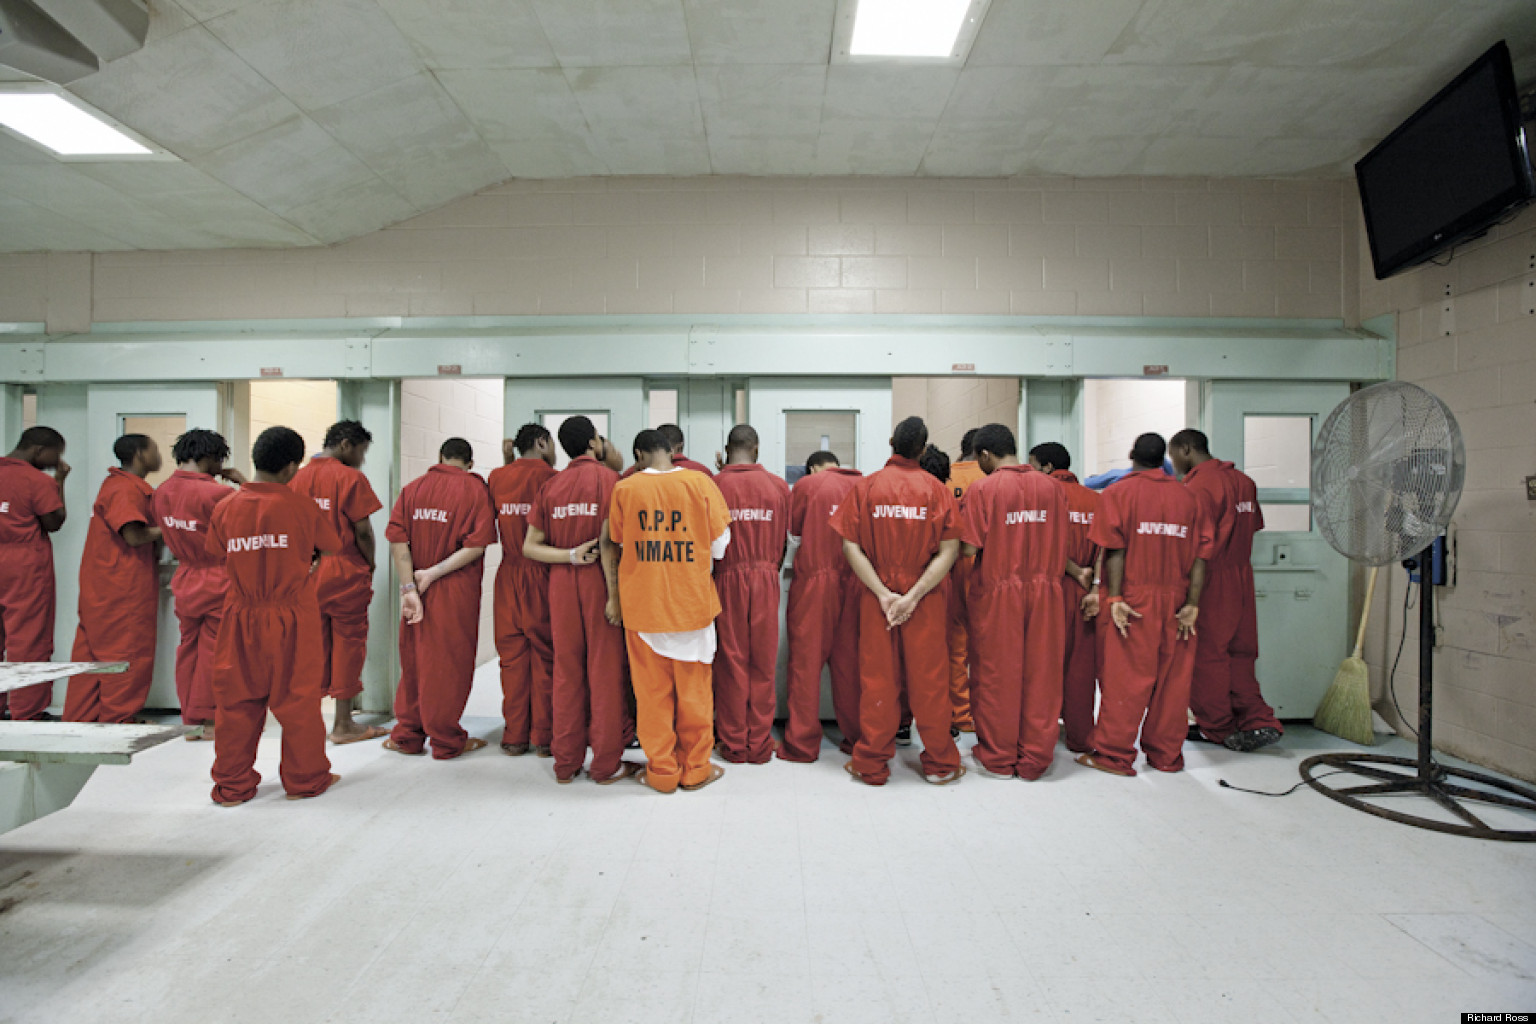 juvenile in justice richard ross photographs provide a juvenile in justice richard ross photographs provide a thoughtful glimpse into the young world behind bars photos the huffington post